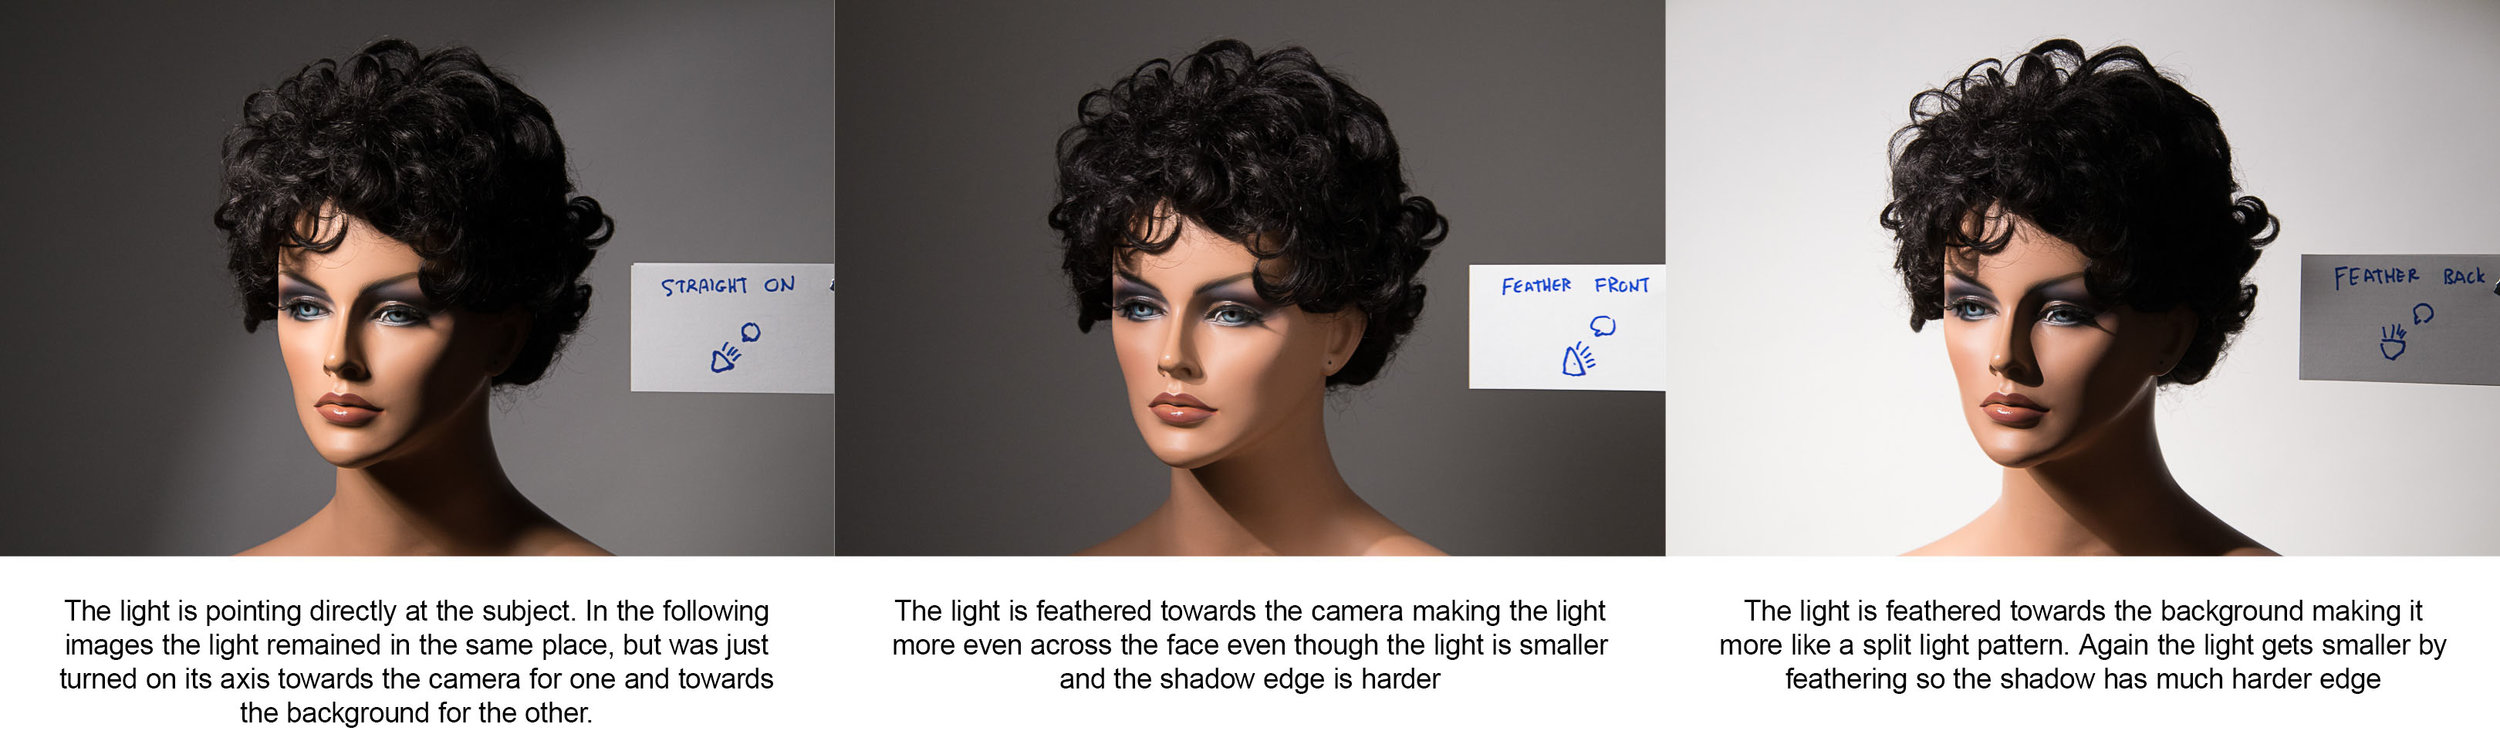 Feathering the light using a hard light source (an 11-inch deep zoom reflector)